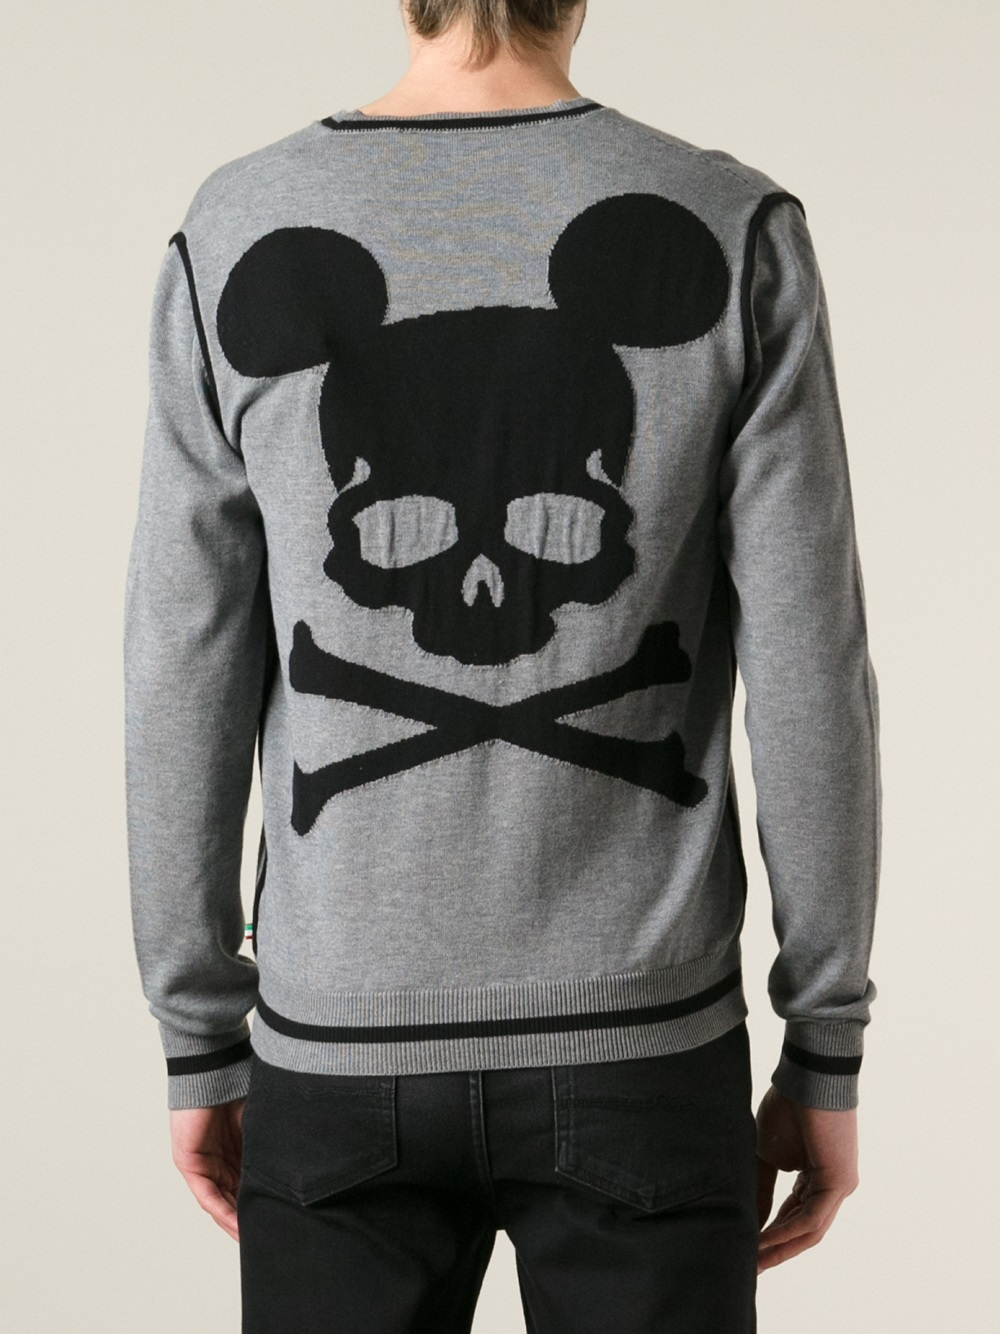 lyst philipp plein skull mouse sweater in gray for men. Black Bedroom Furniture Sets. Home Design Ideas